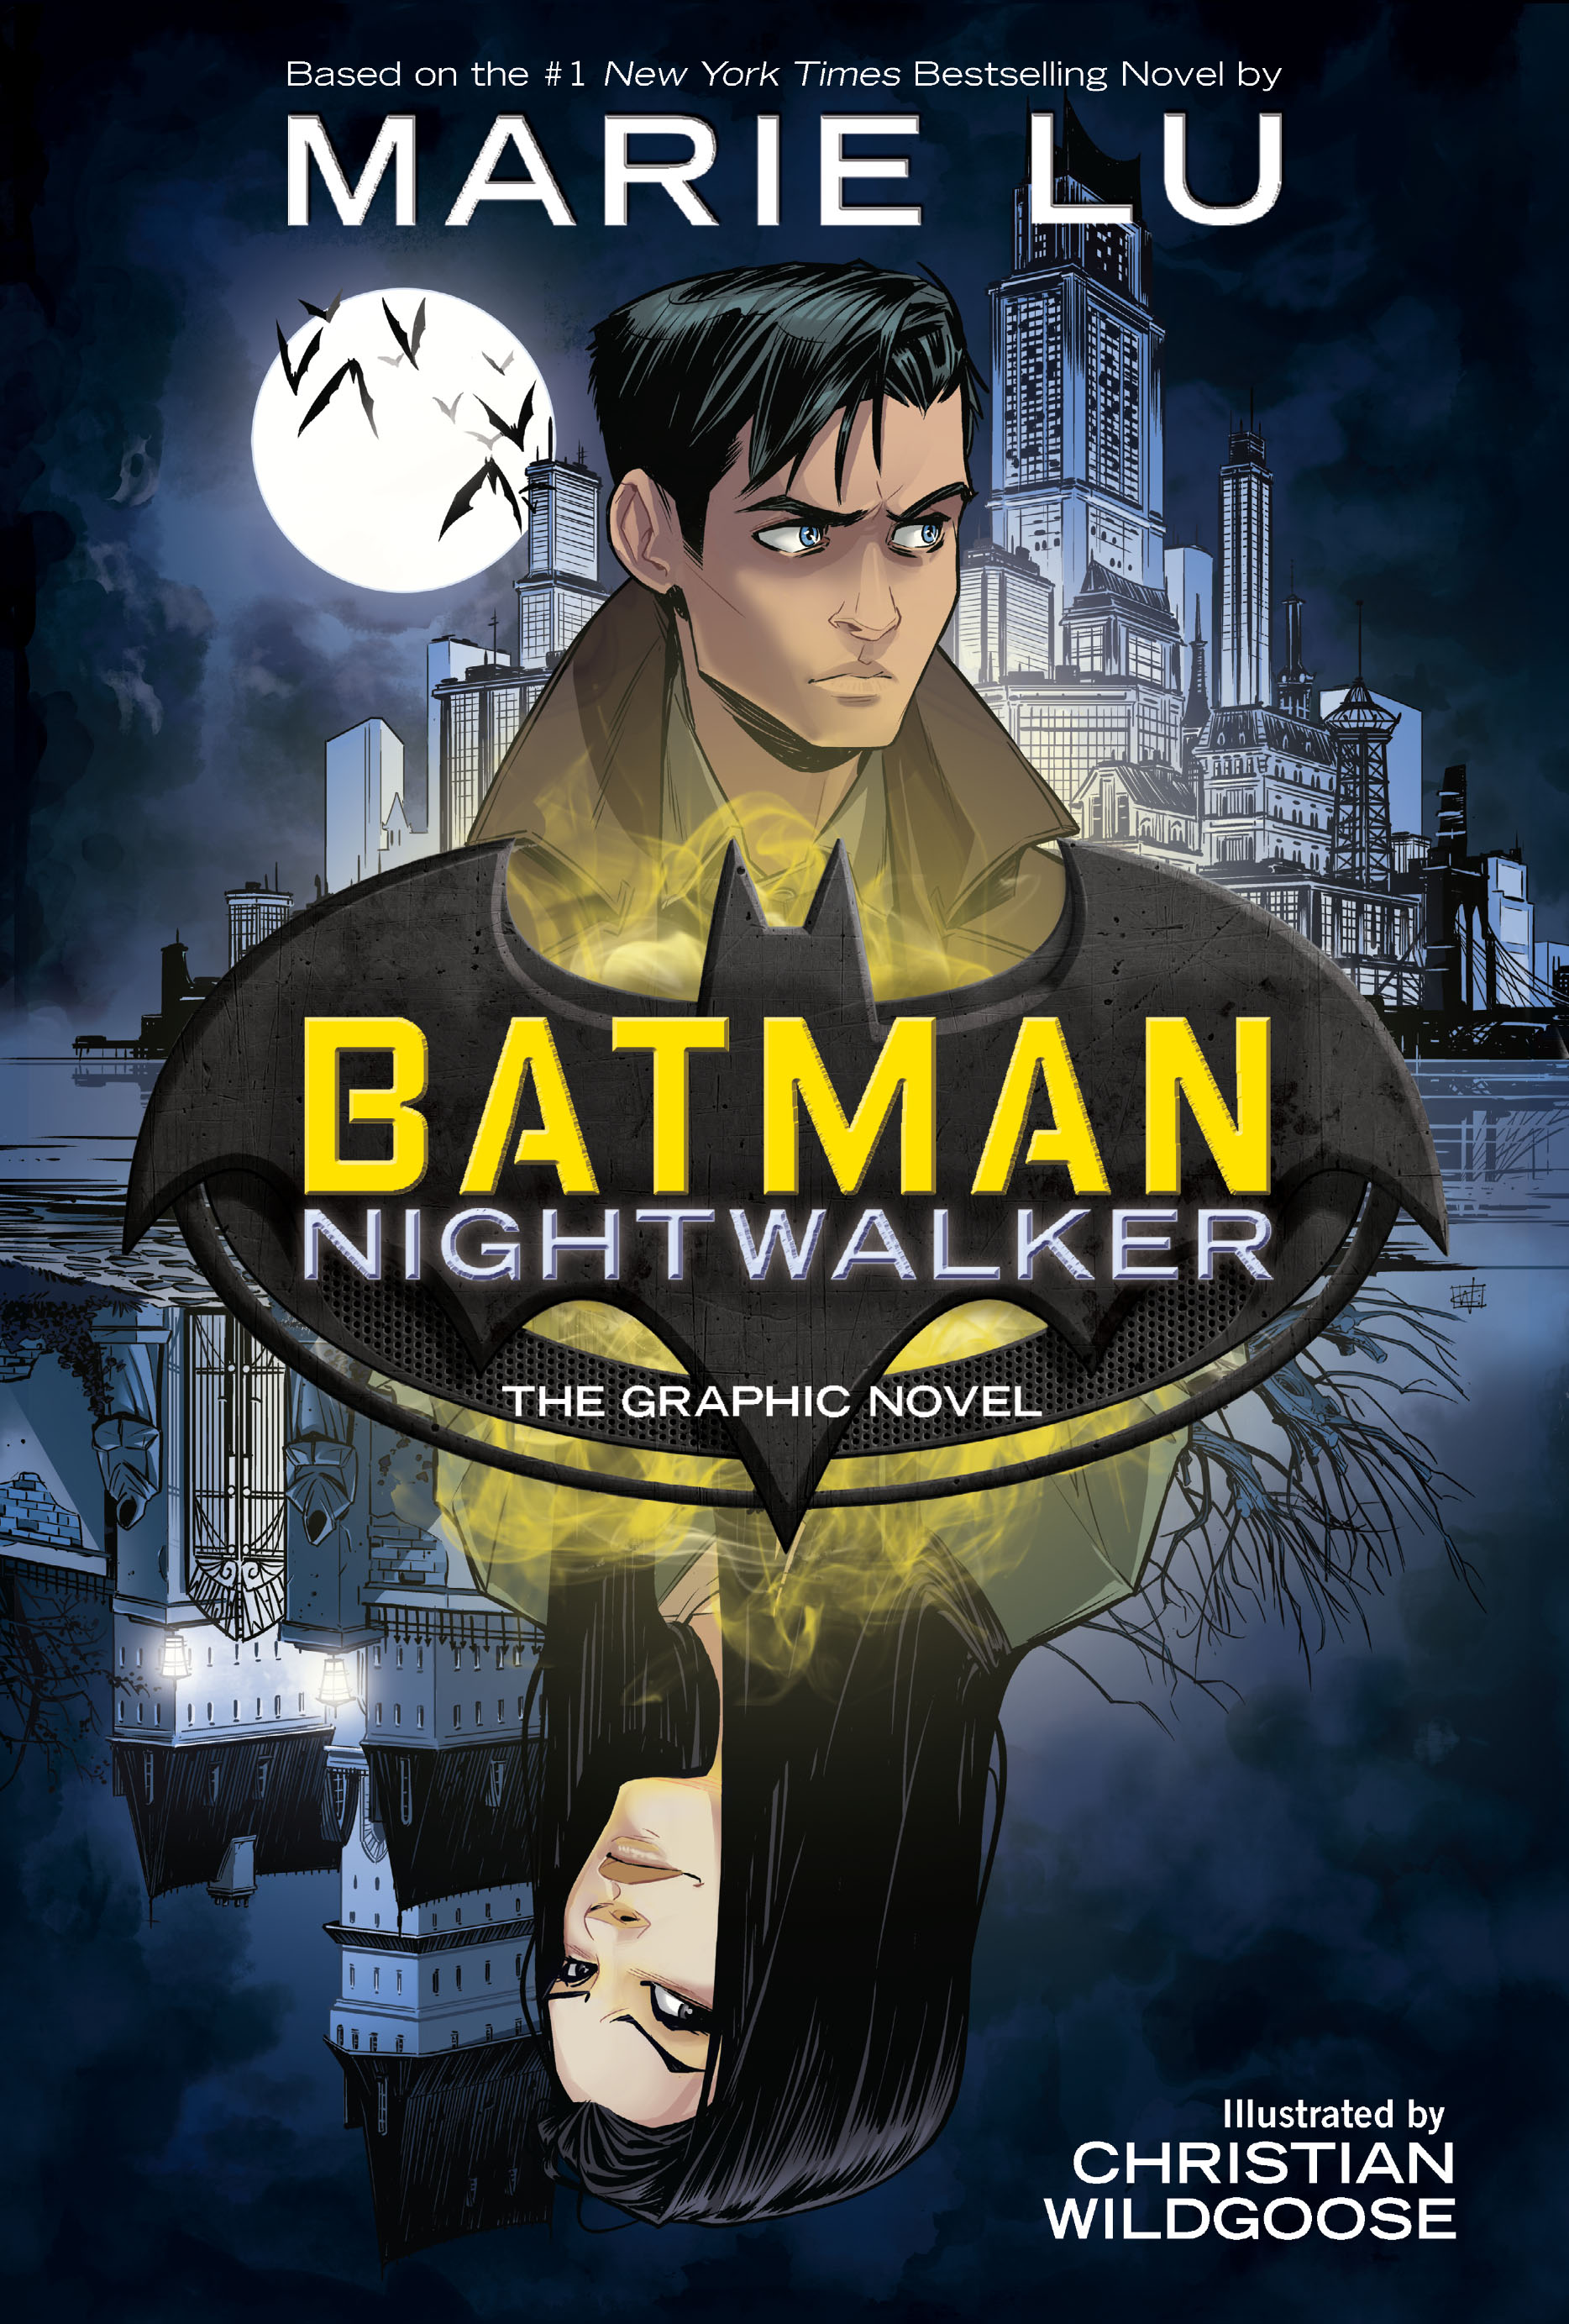 DC announces new young adult and middle grade graphic novels, including 'Batman: Nightwalker'